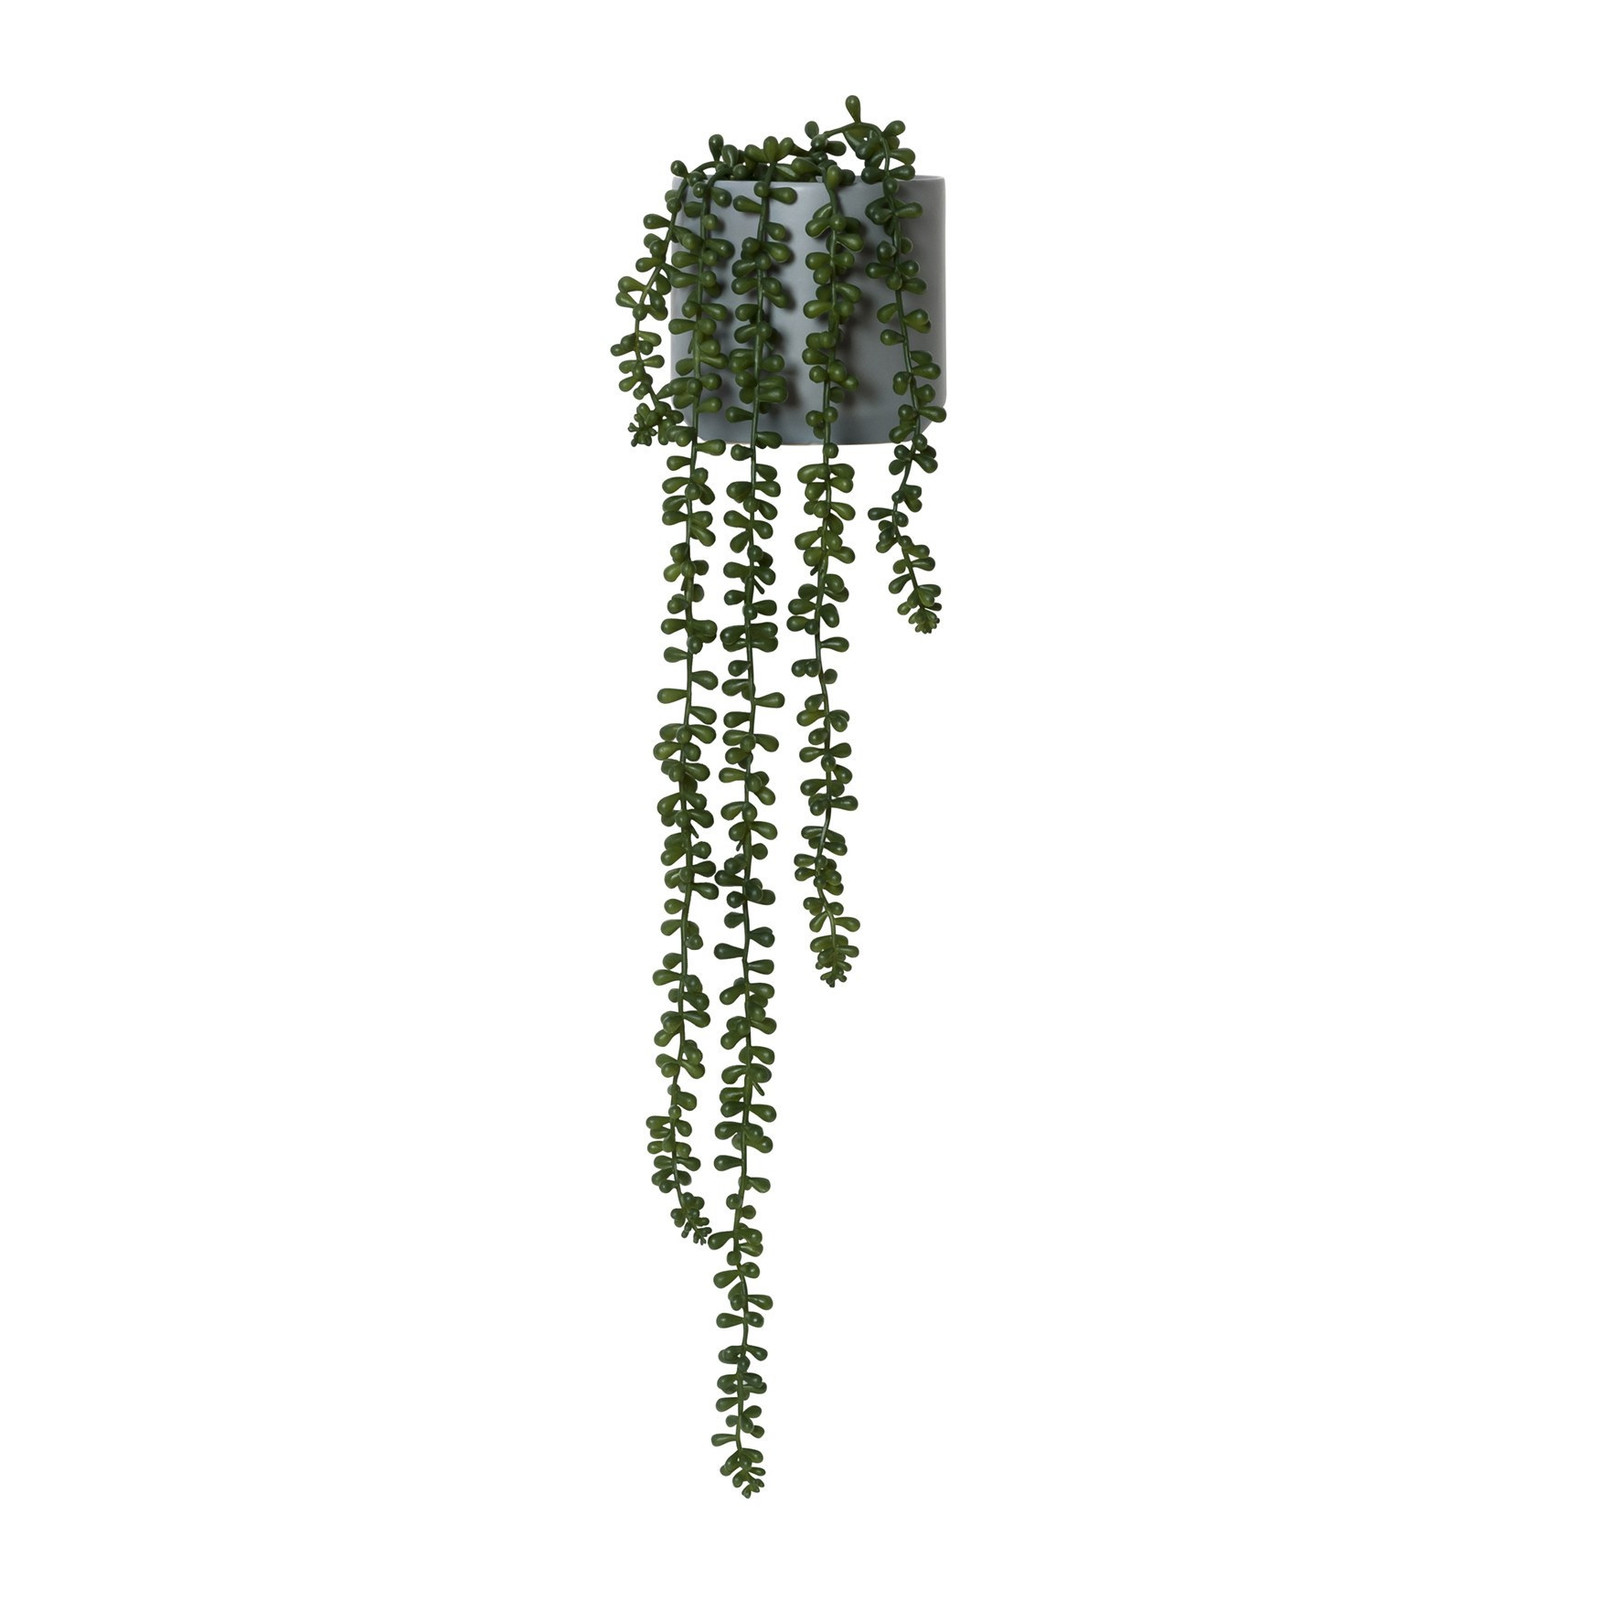 General Eclectic Artificial Plant - String of Pearls (Large - 75cm) image